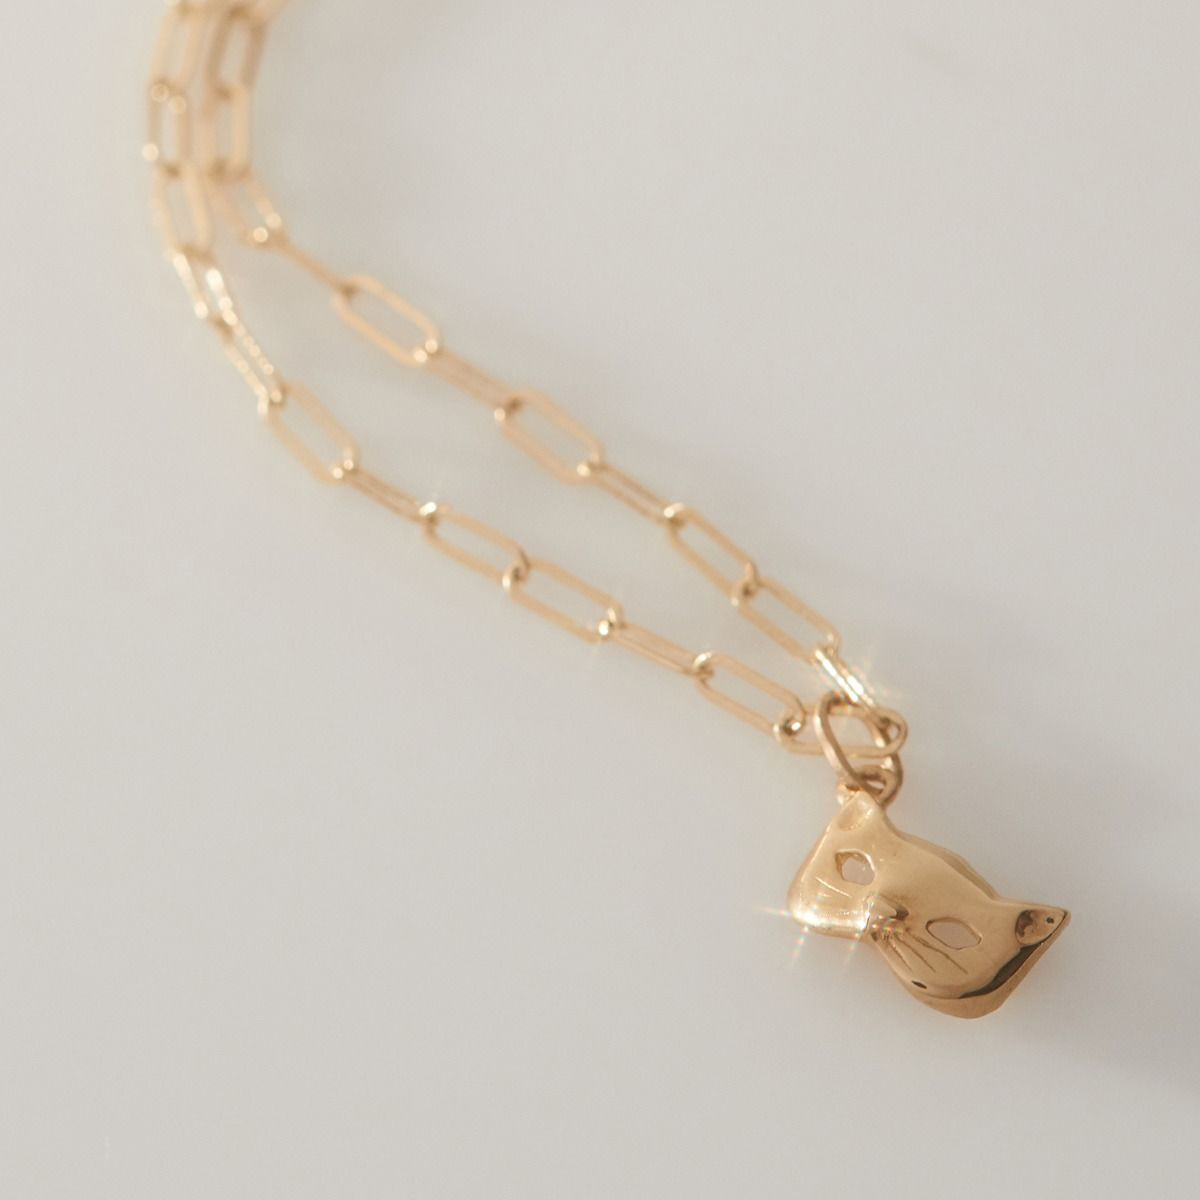 14K Yellow Gold Kitten Cat Mask Charm Bracelet Catbird Brooklyn